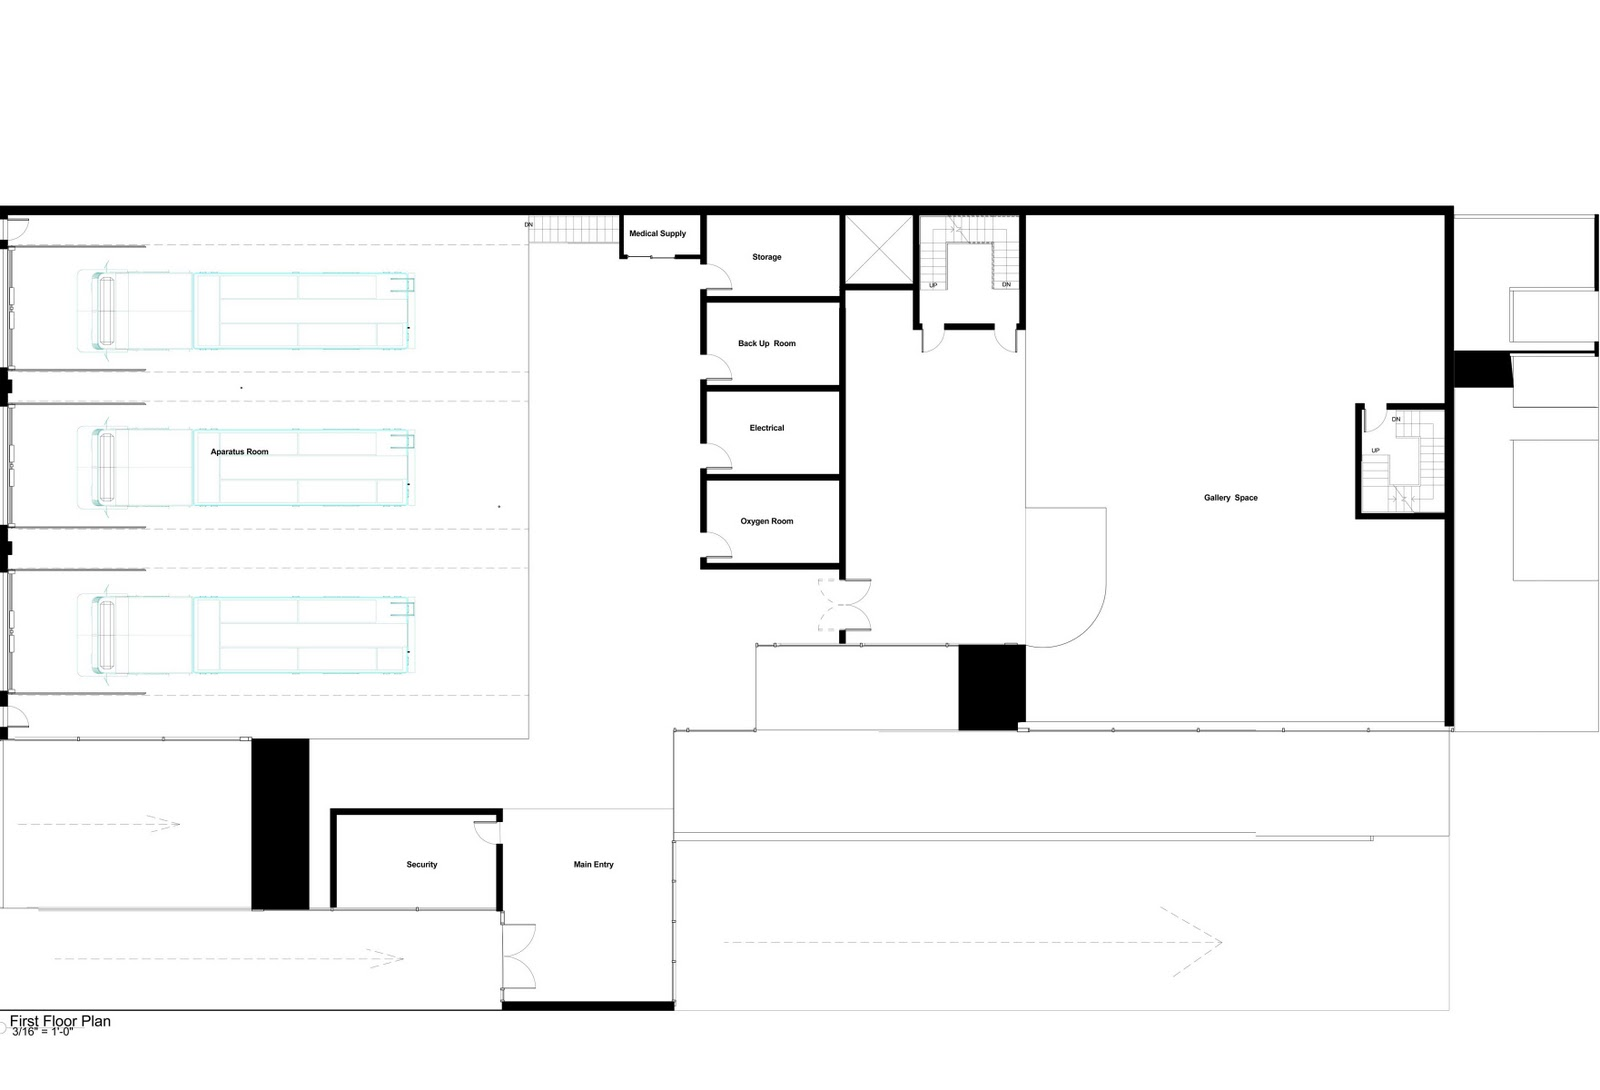 Arch 3611 Theoretical Design Fire Station Floor Plan And Secitons